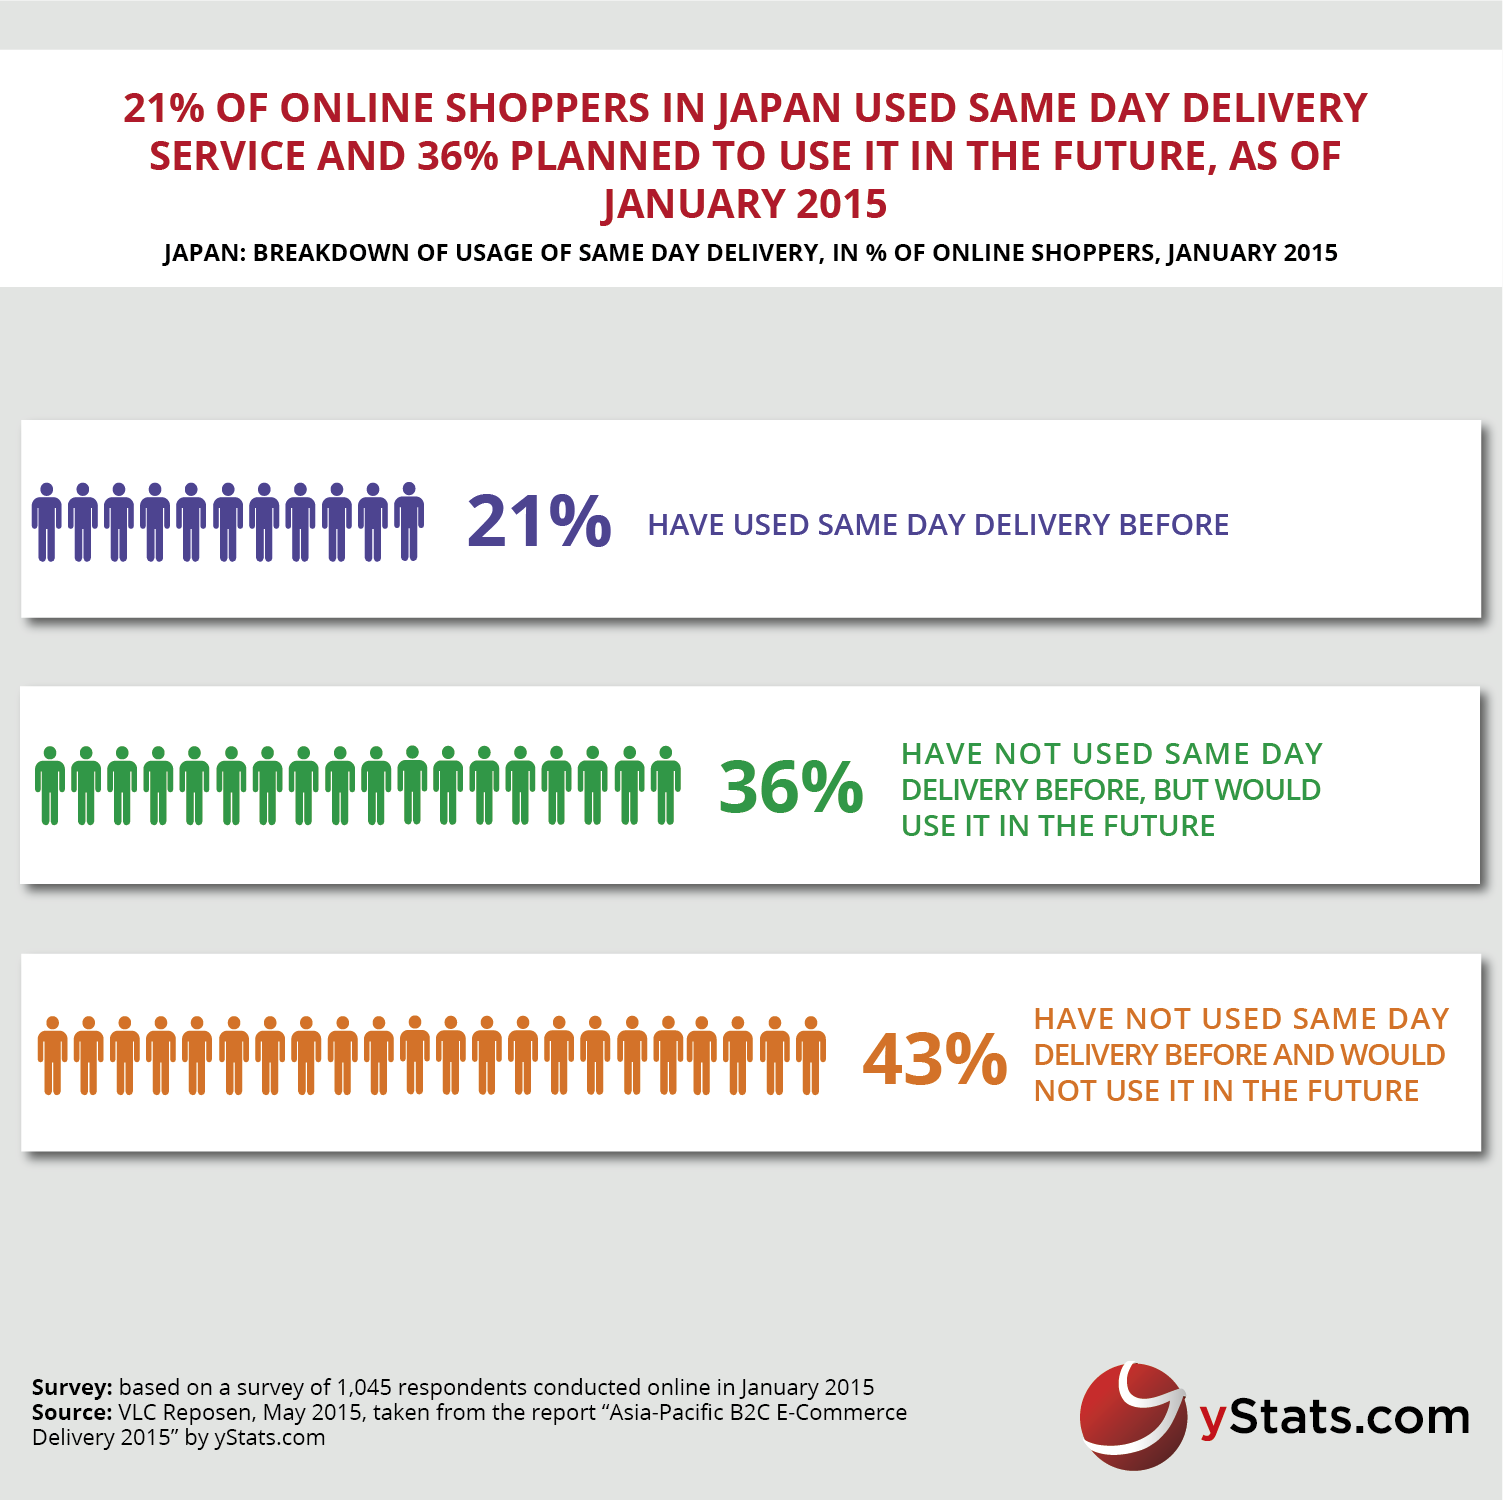 Infographic Asia-Pacific B2C E-Commerce Delivery 2015 by yStats.com